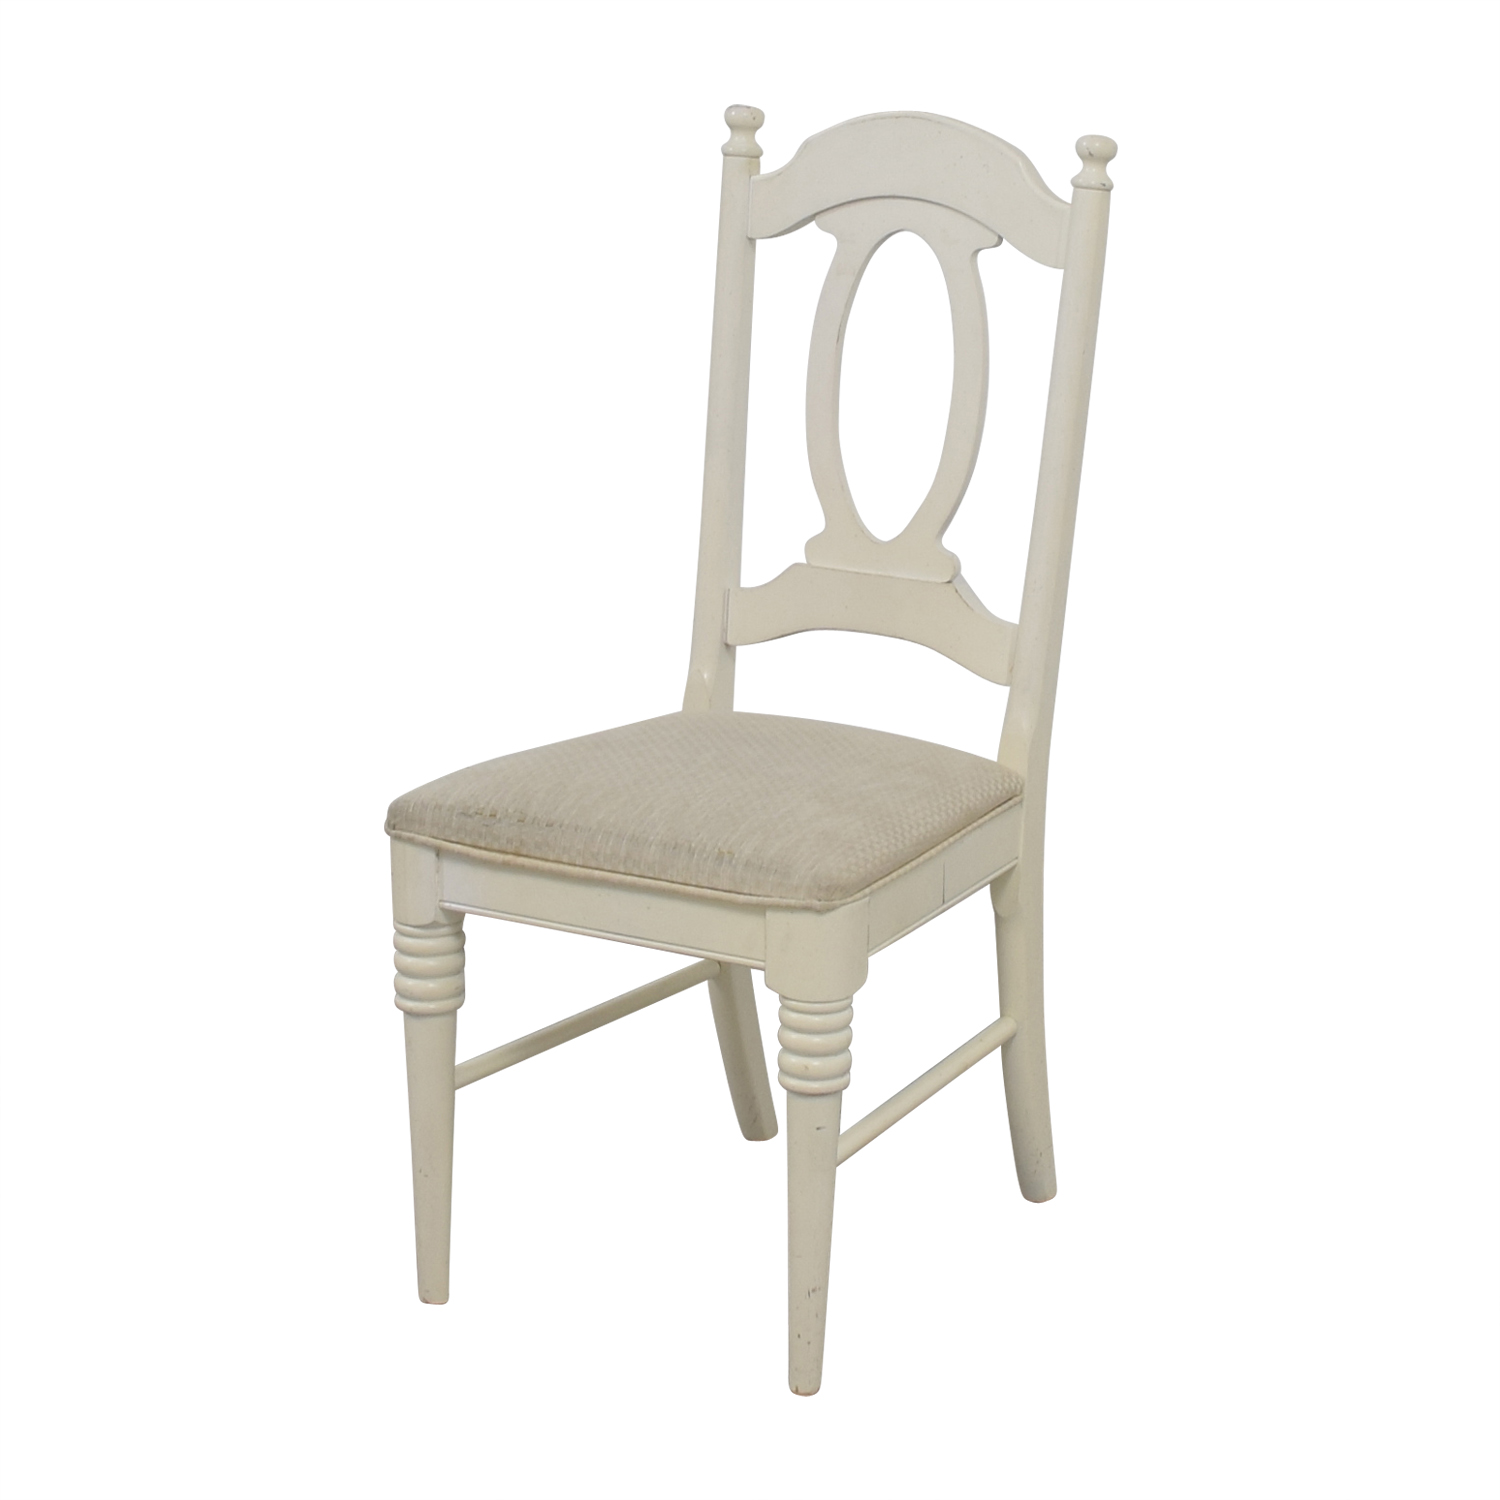 Studley Furniture Studley Furniture Classic Accent Chair dimensions